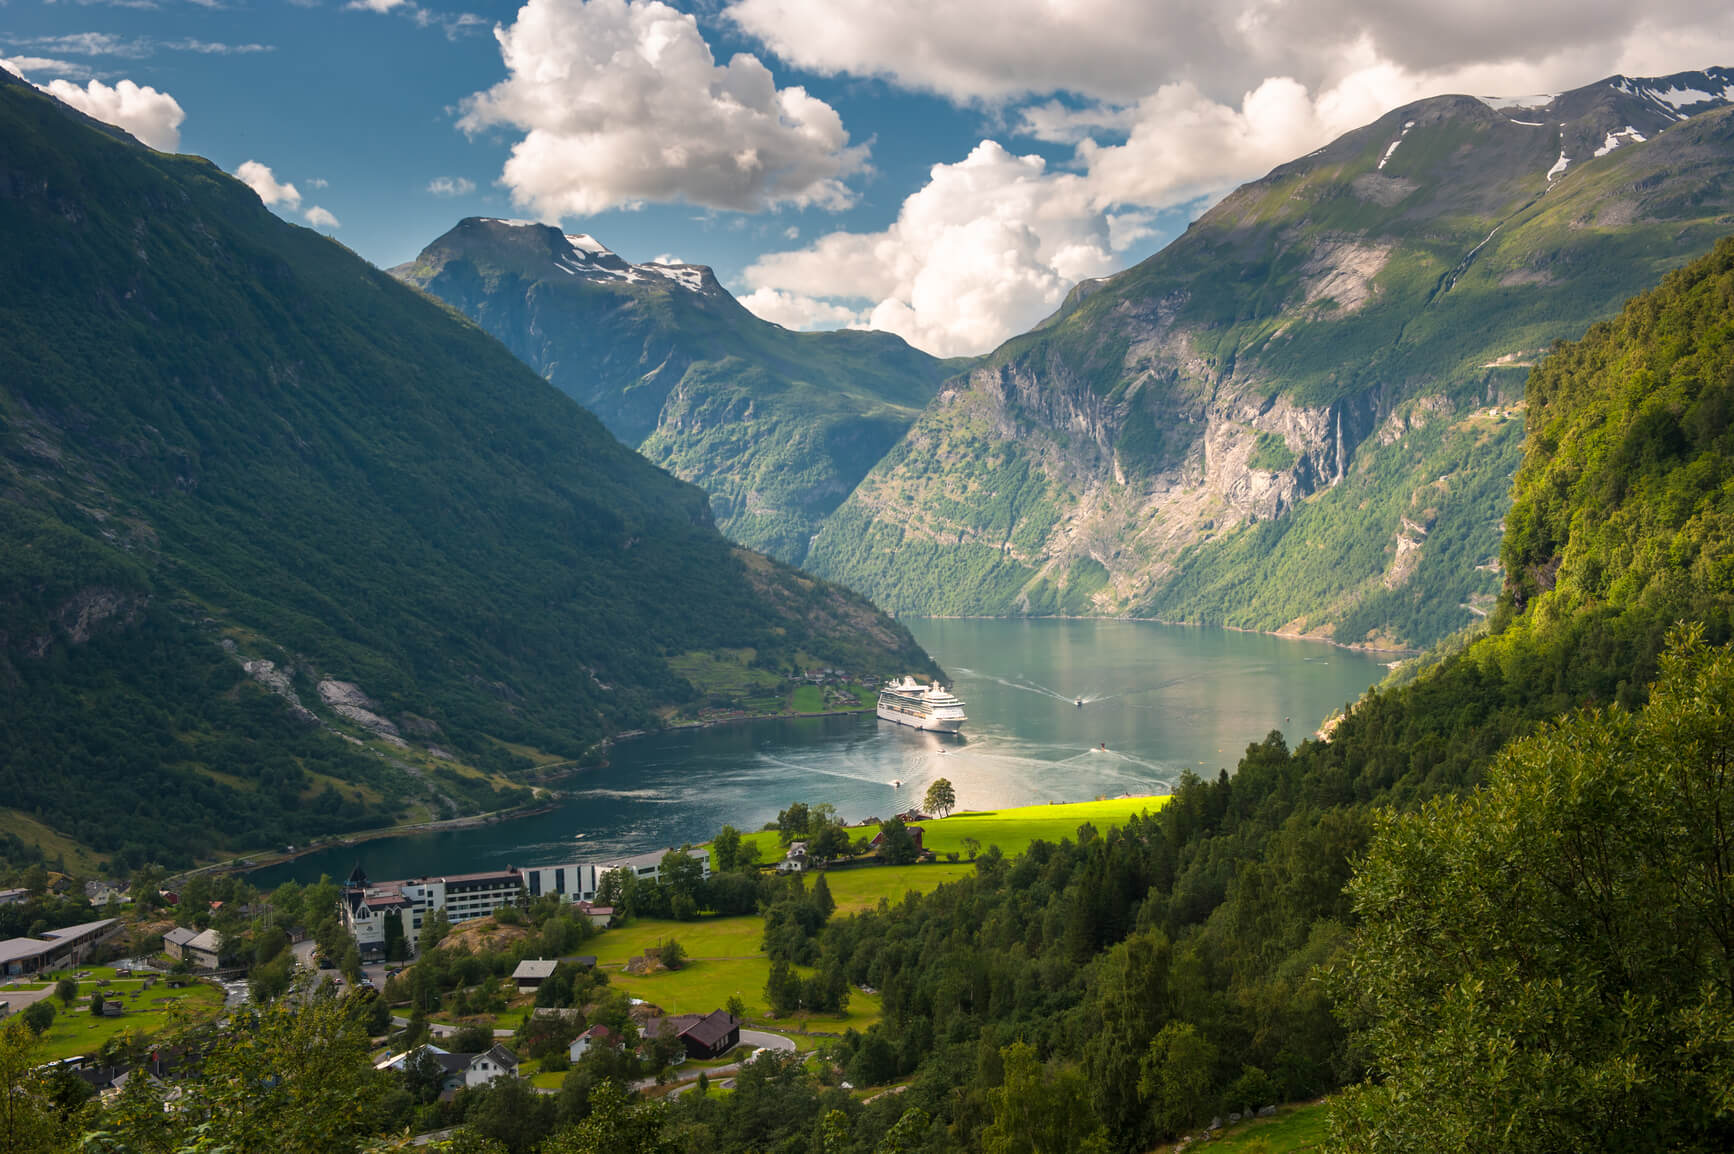 EXPIRED Los Angeles to Oslo Norway for only 407 roundtrip